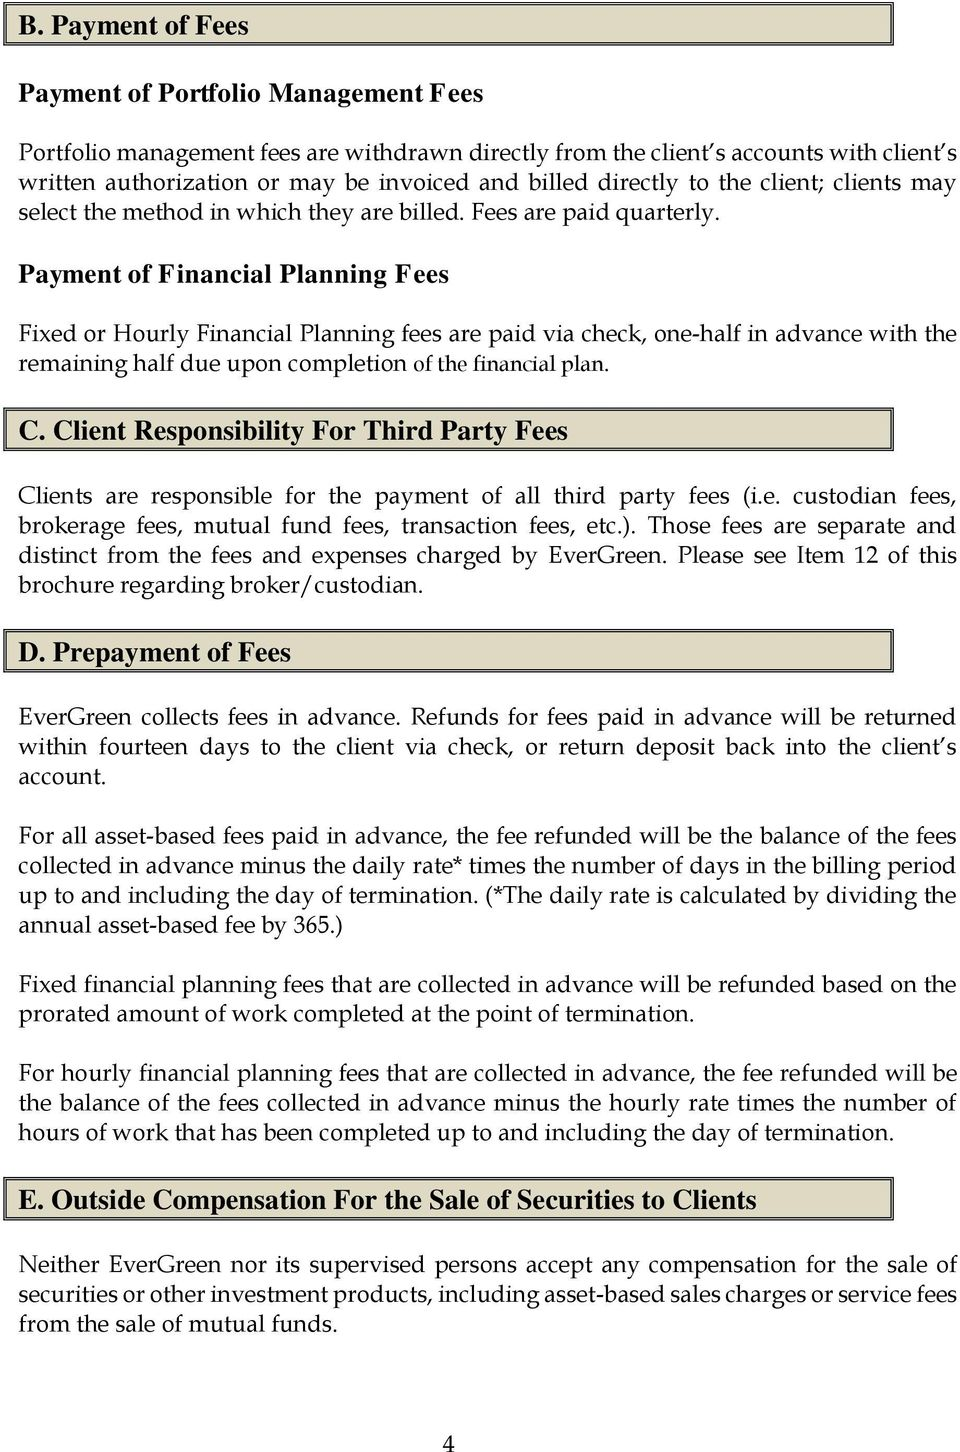 Payment of Financial Planning Fees Fixed or Hourly Financial Planning fees are paid via check, one-half in advance with the remaining half due upon completion of the financial plan. C.